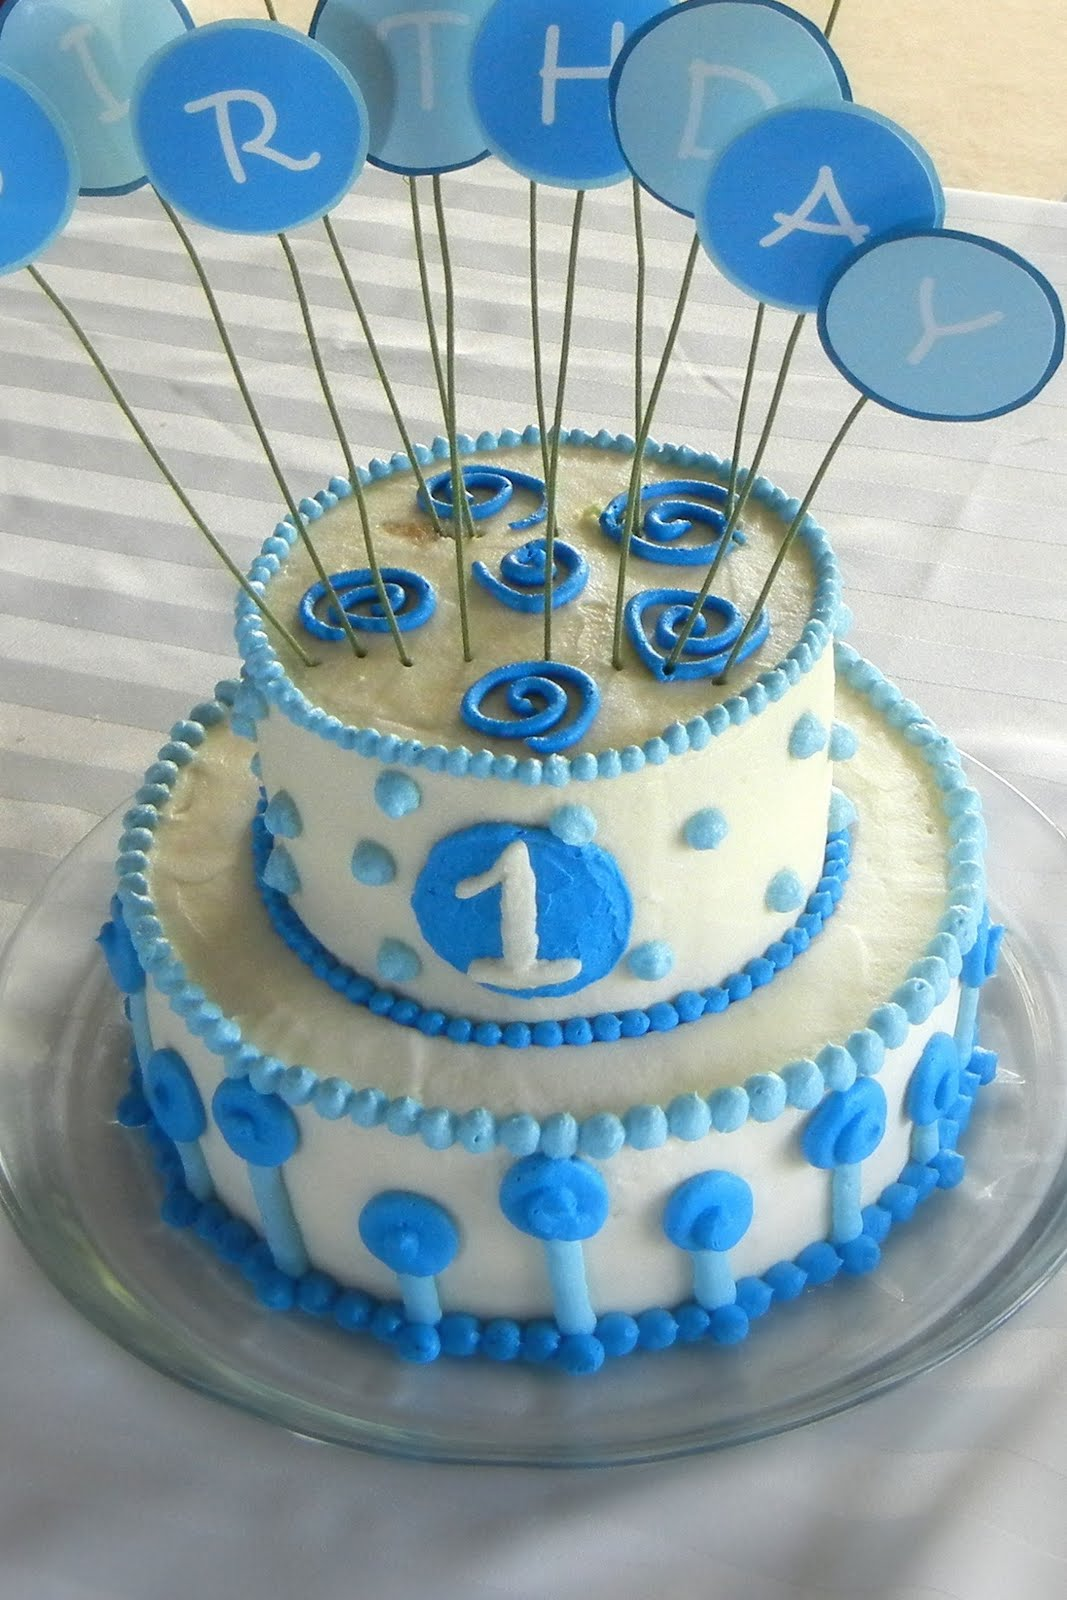 Remarkable First Birthday Cake For Baby Boy Top Birthday Cake Pictures Personalised Birthday Cards Petedlily Jamesorg